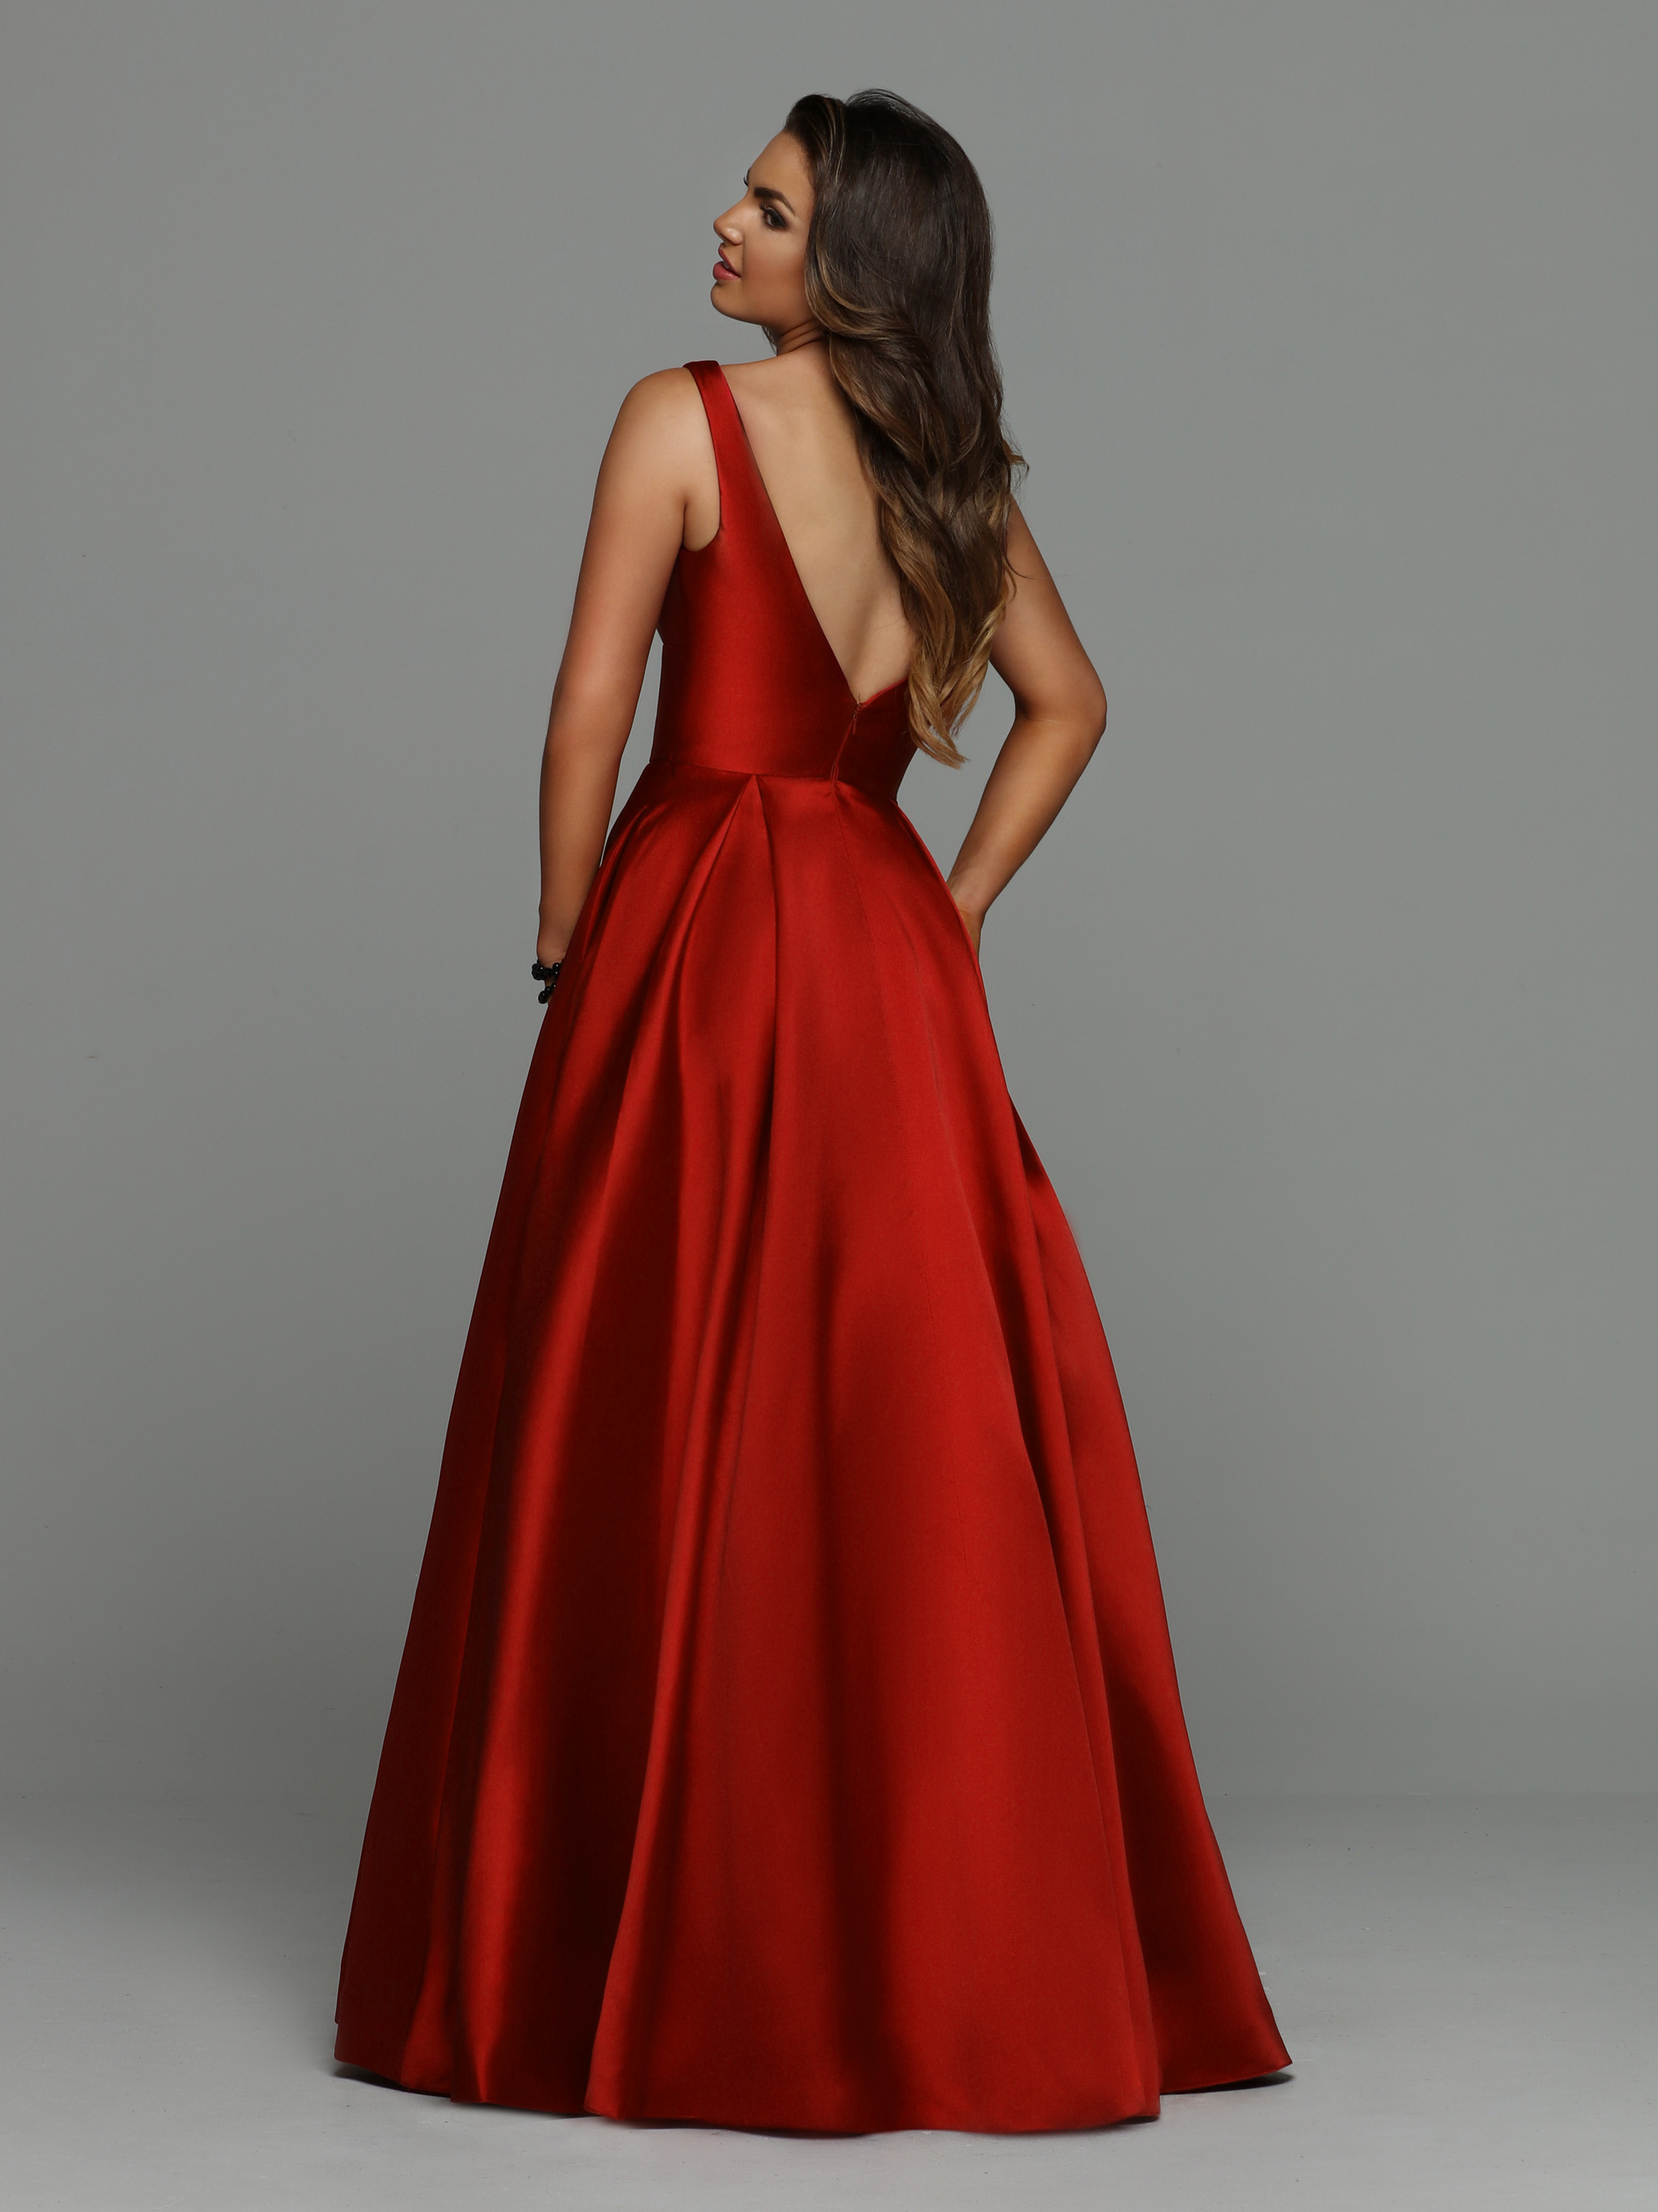 Image showing back view of style #71944